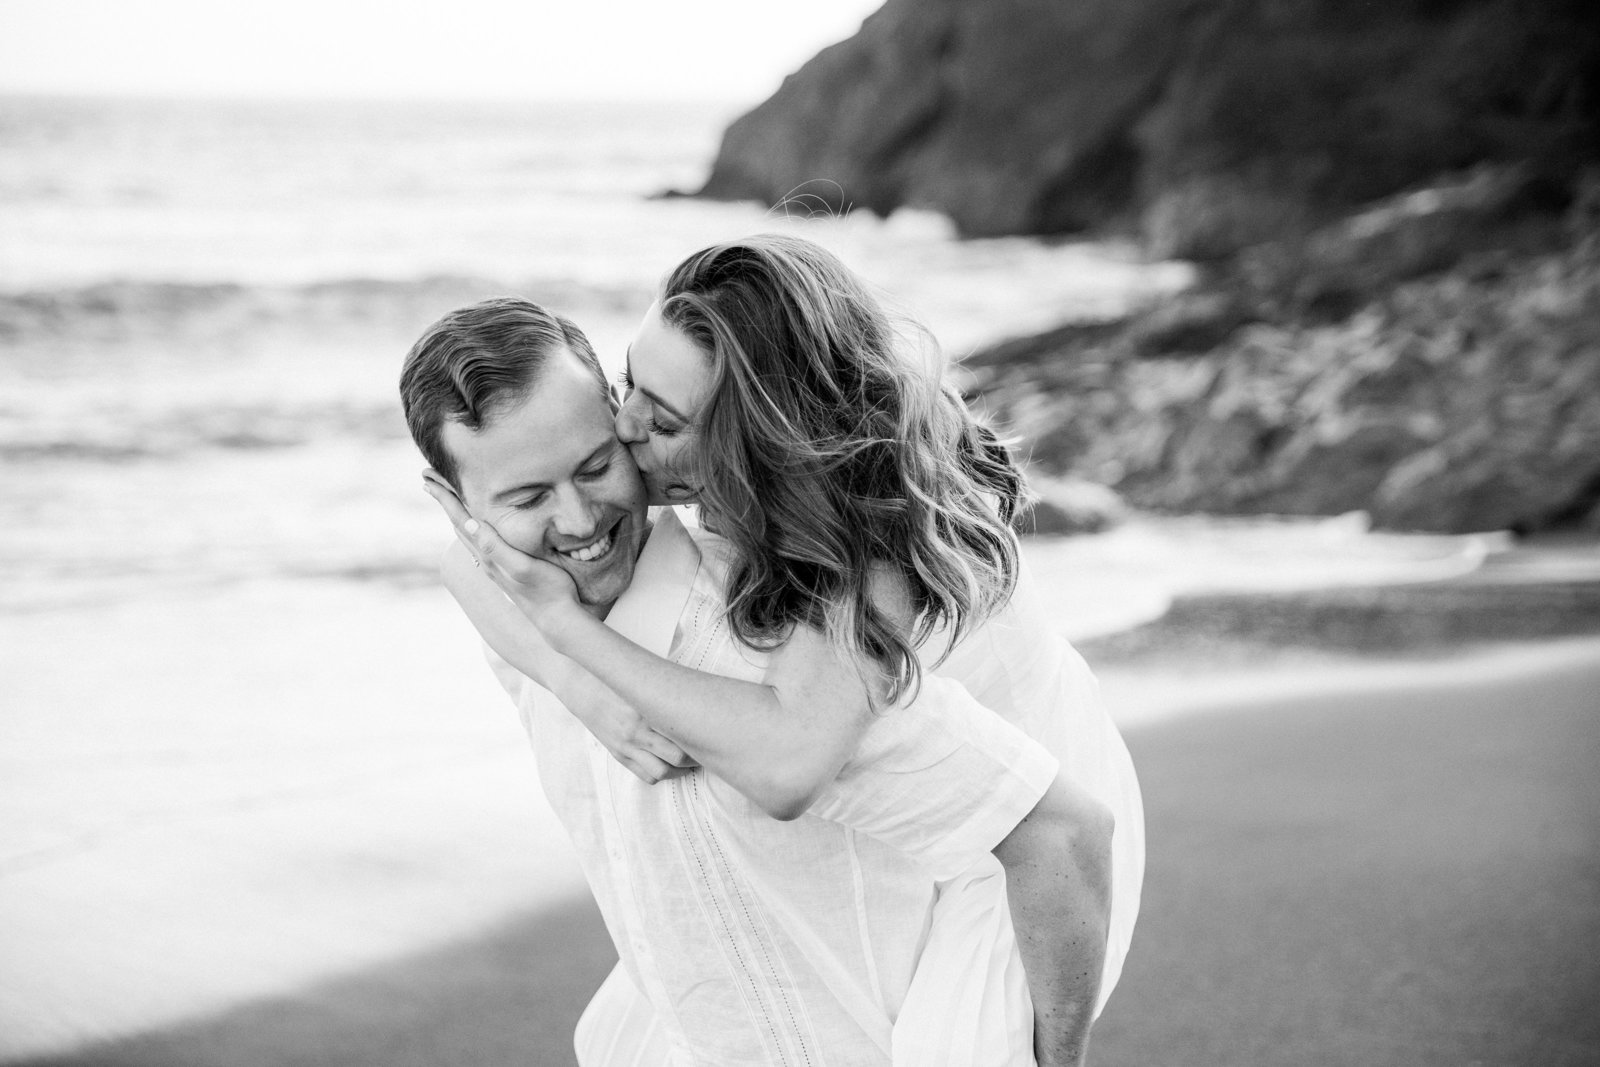 007-larissa-cleveland-engaged-wedding_photographer-san-francisco-carmel-napa-california-662A1139